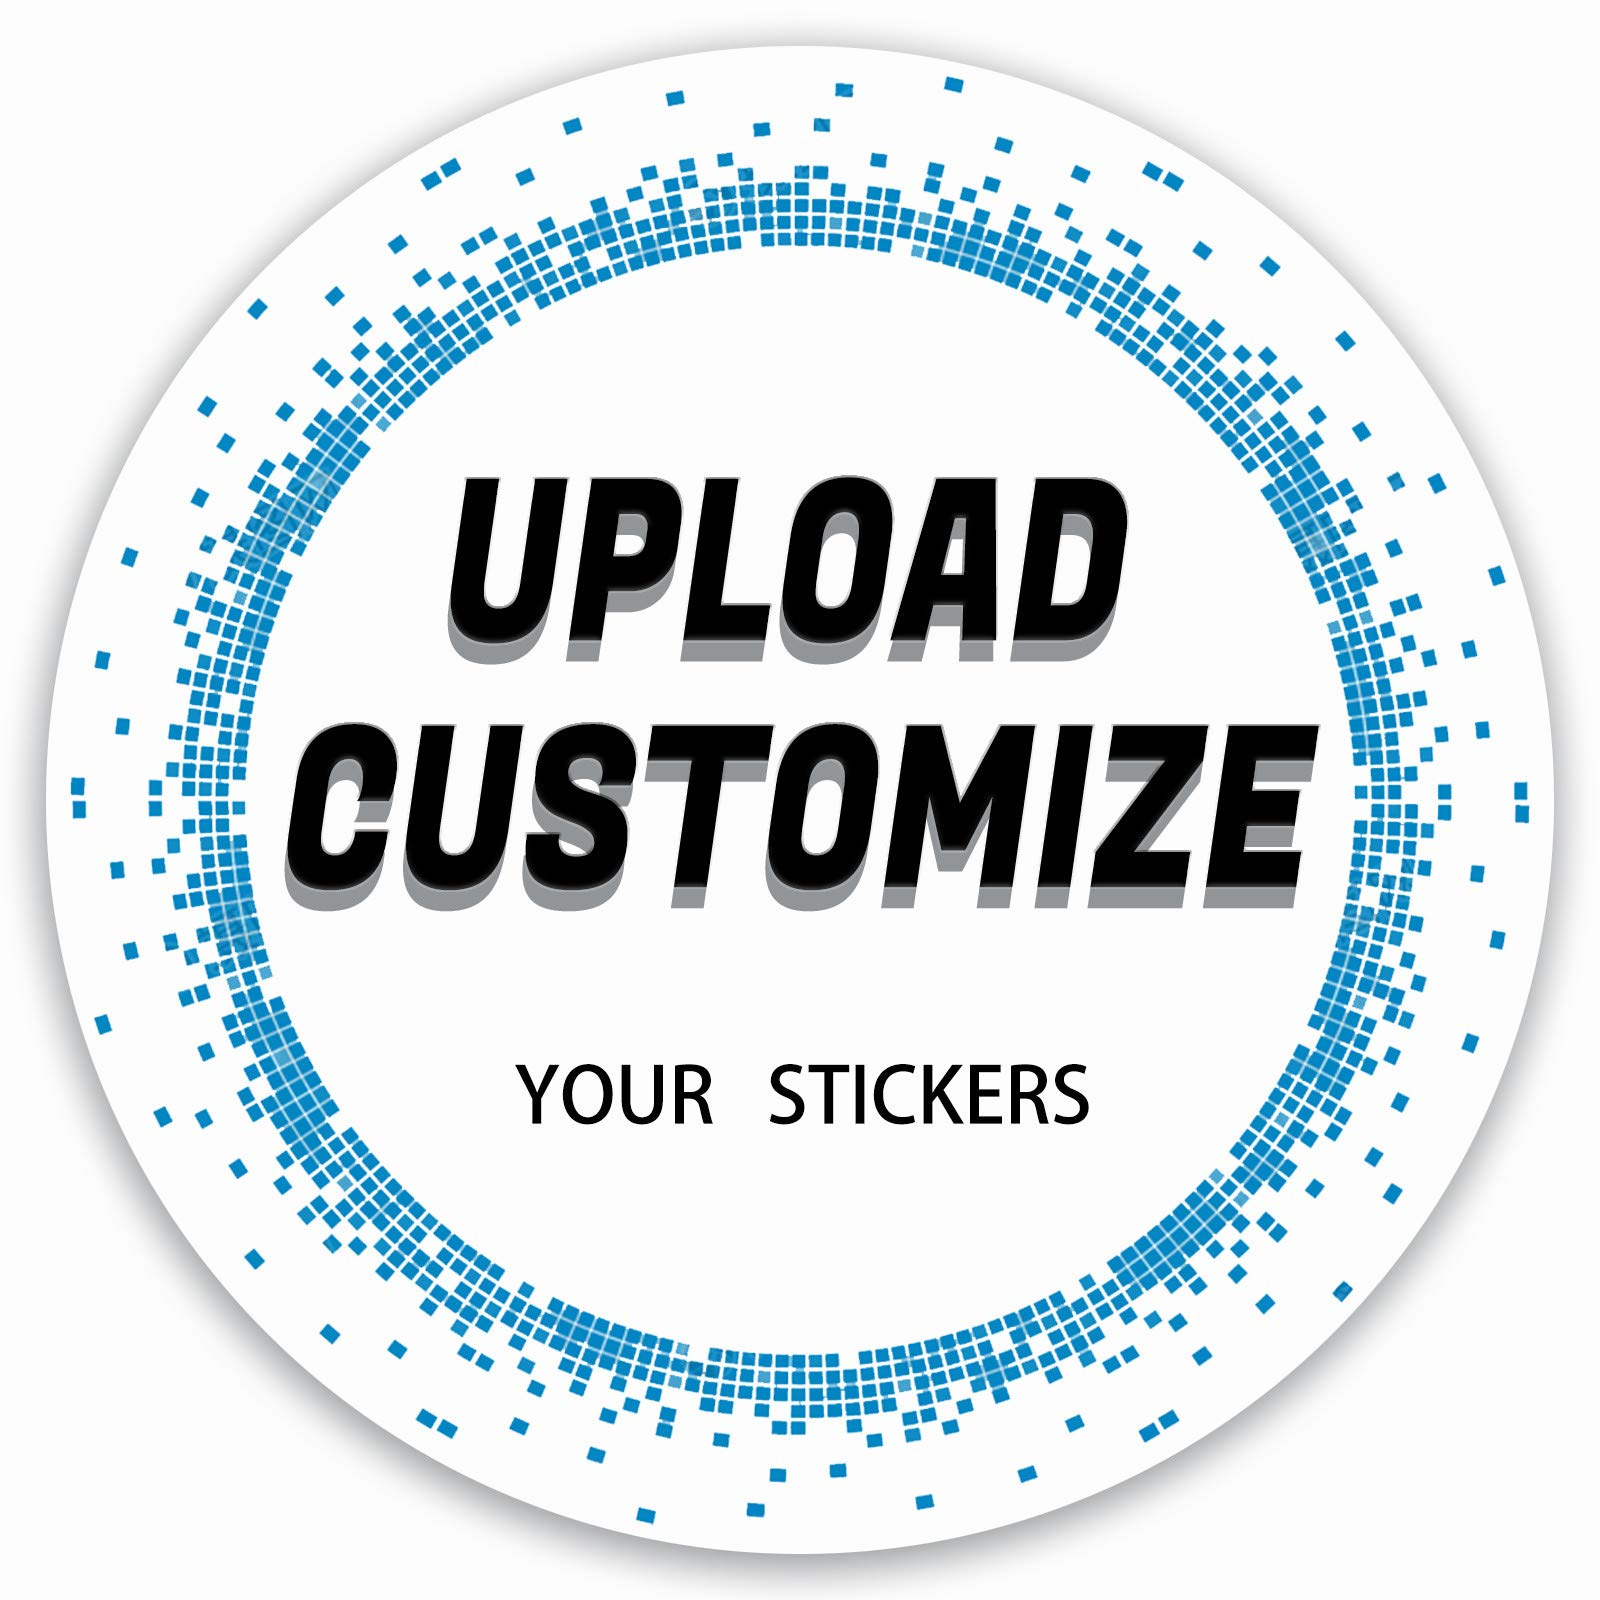 Custom Stickers 60pcs Pack Circle Waterproof Fading Resistance Vinyl Personalized Stickers Labels for Car Bumper Wedding Name Logo Wall Decal 2.5x2.5 inch